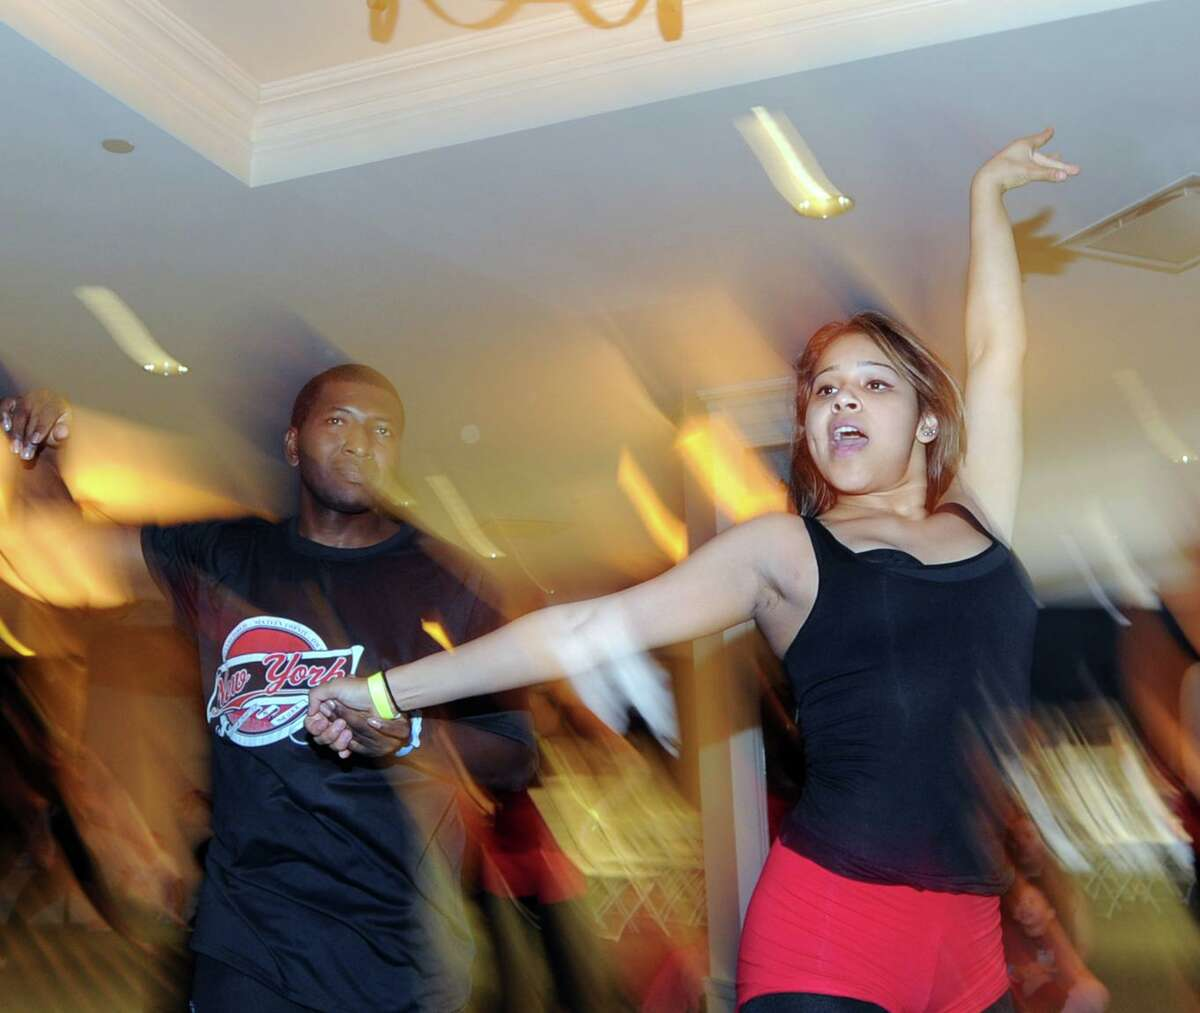 Salsa dancers, Eddie Ballesteros, left, and Diana Hoyos, members of a dance team from Elizabeth, N.J., perform during the 11th annual Connecticut Salsa Dancing Fest at the Marriott Hotel & Spa in Stamford in 2015. After a year's hiatus and a new name, the Tri-State Dance Festival is returning to Stamford this weekend.